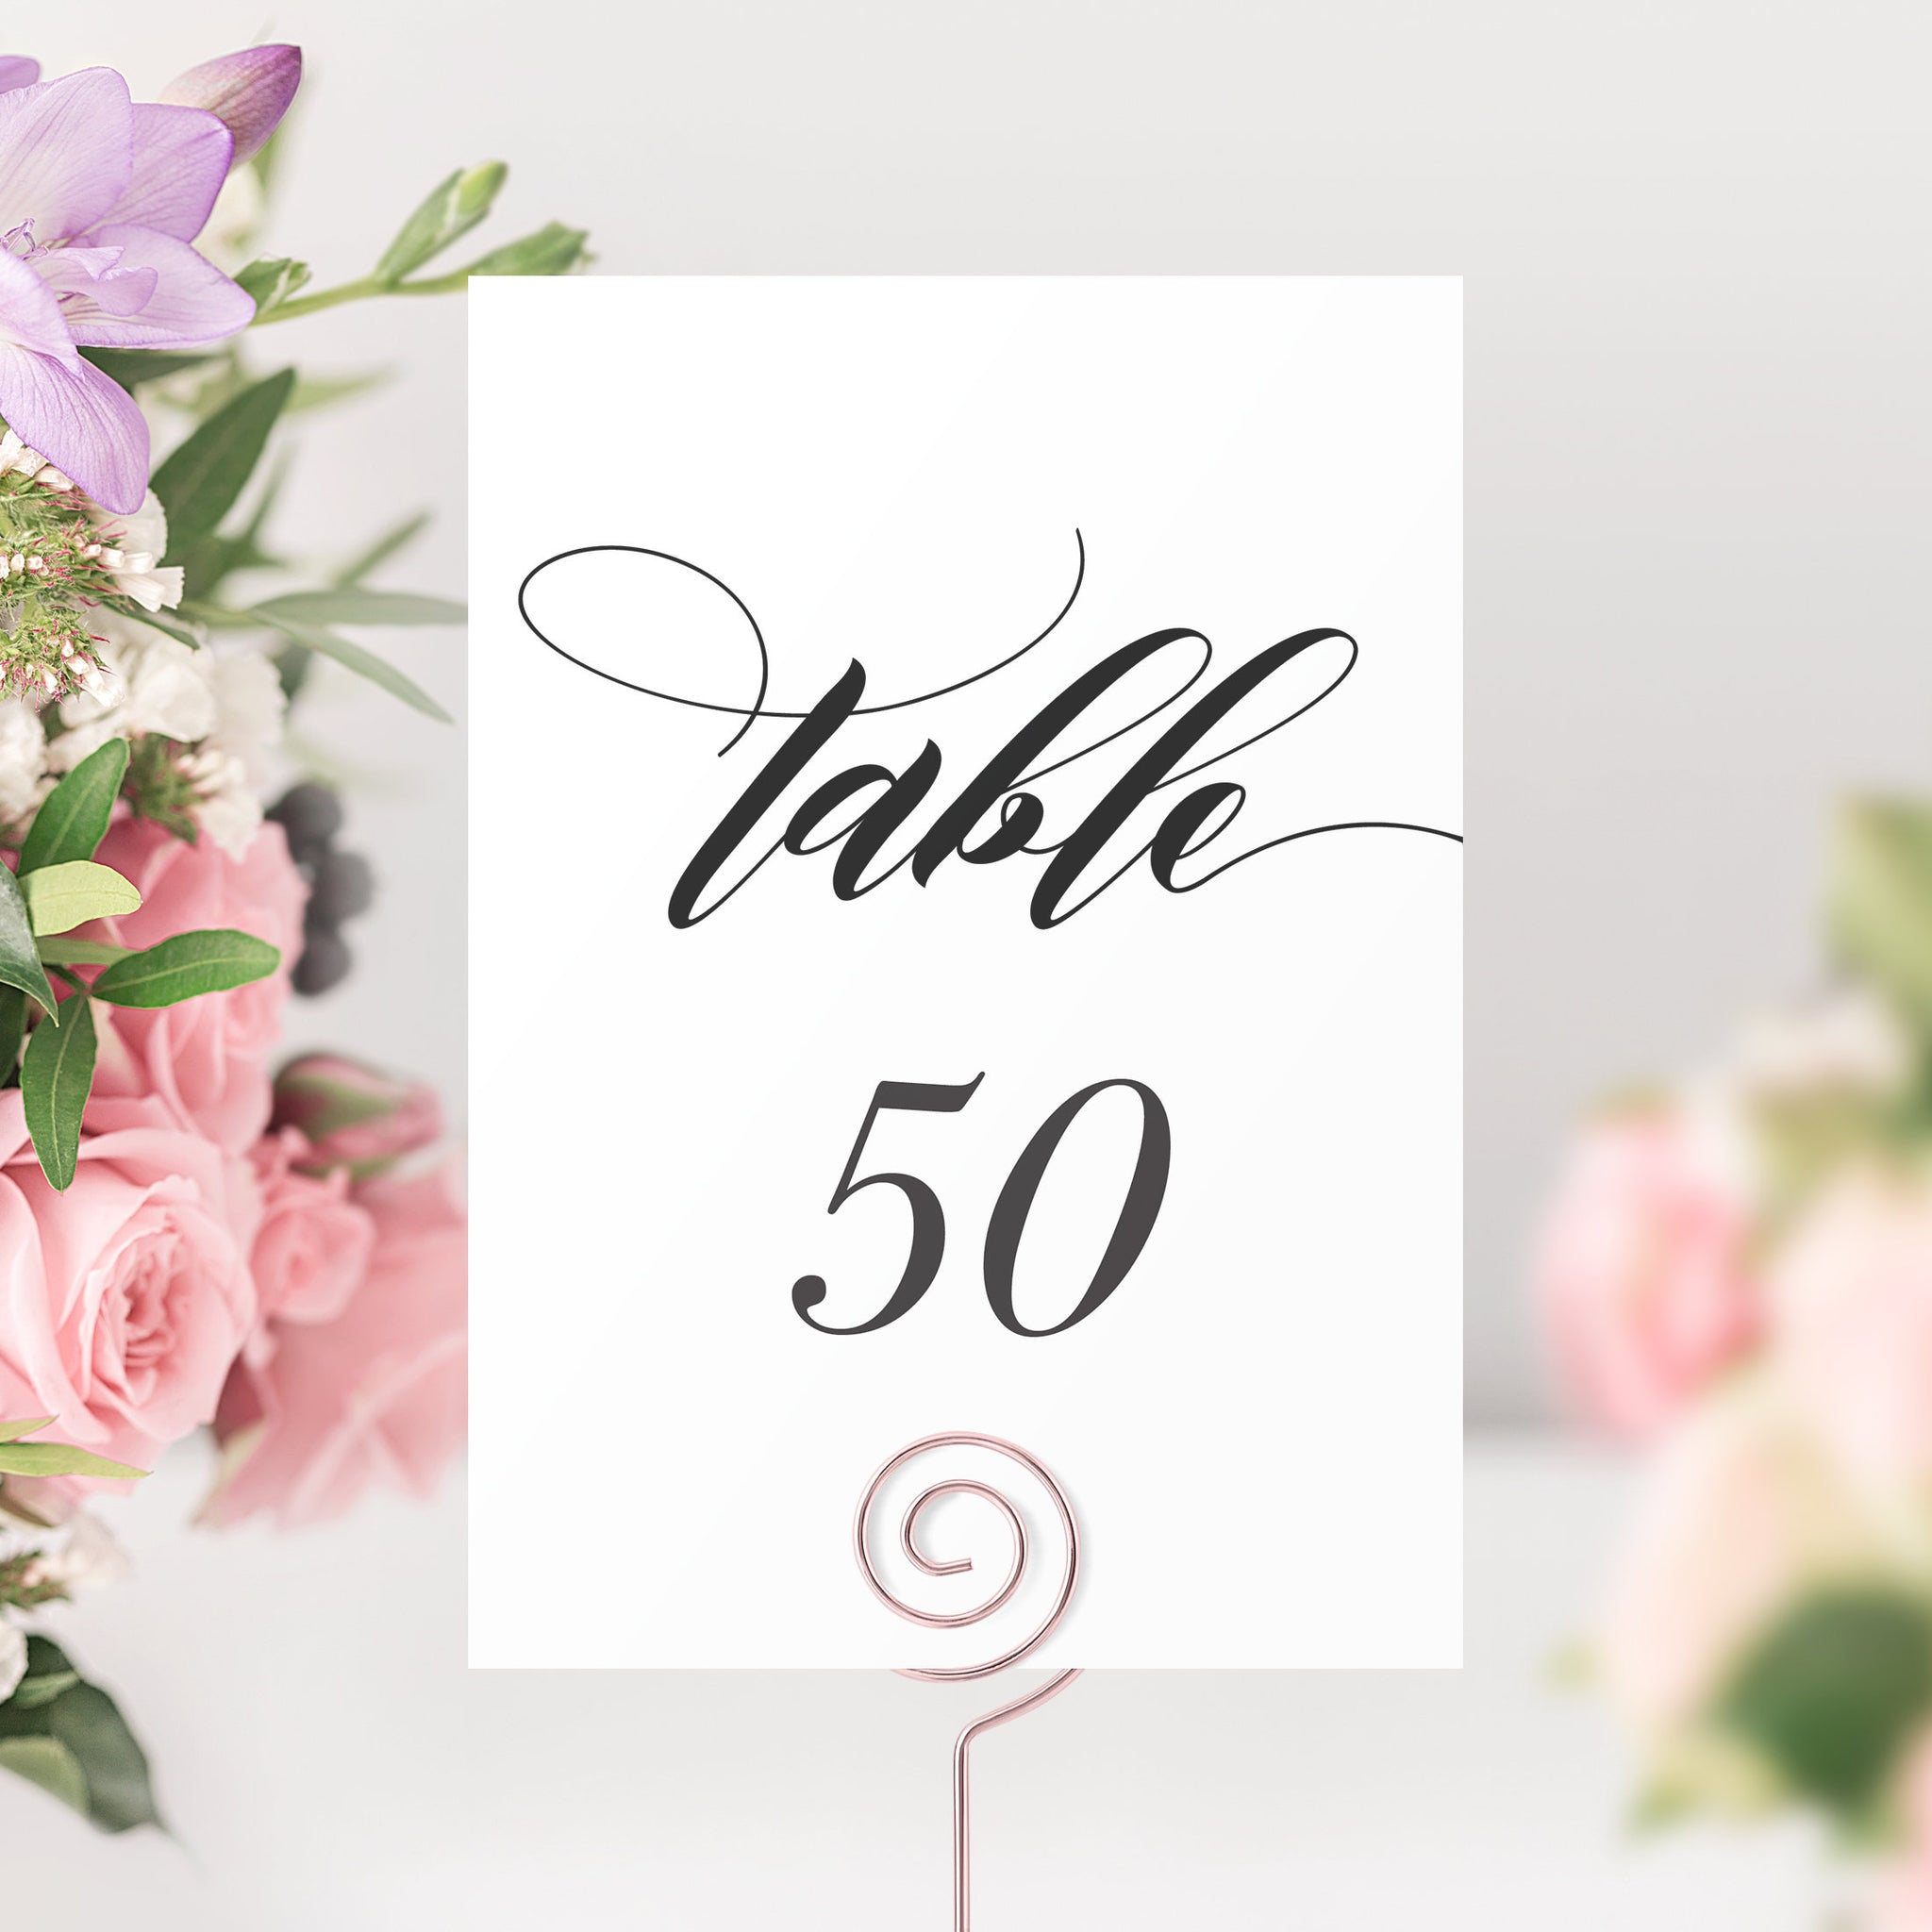 Wedding Table Numbers 1-50, Table Number Cards Wedding, Script Table Numbers, Table Numbers 4x6 and 5x7, Printable INSTANT DOWNLOAD - SFB100 - @PlumPolkaDot